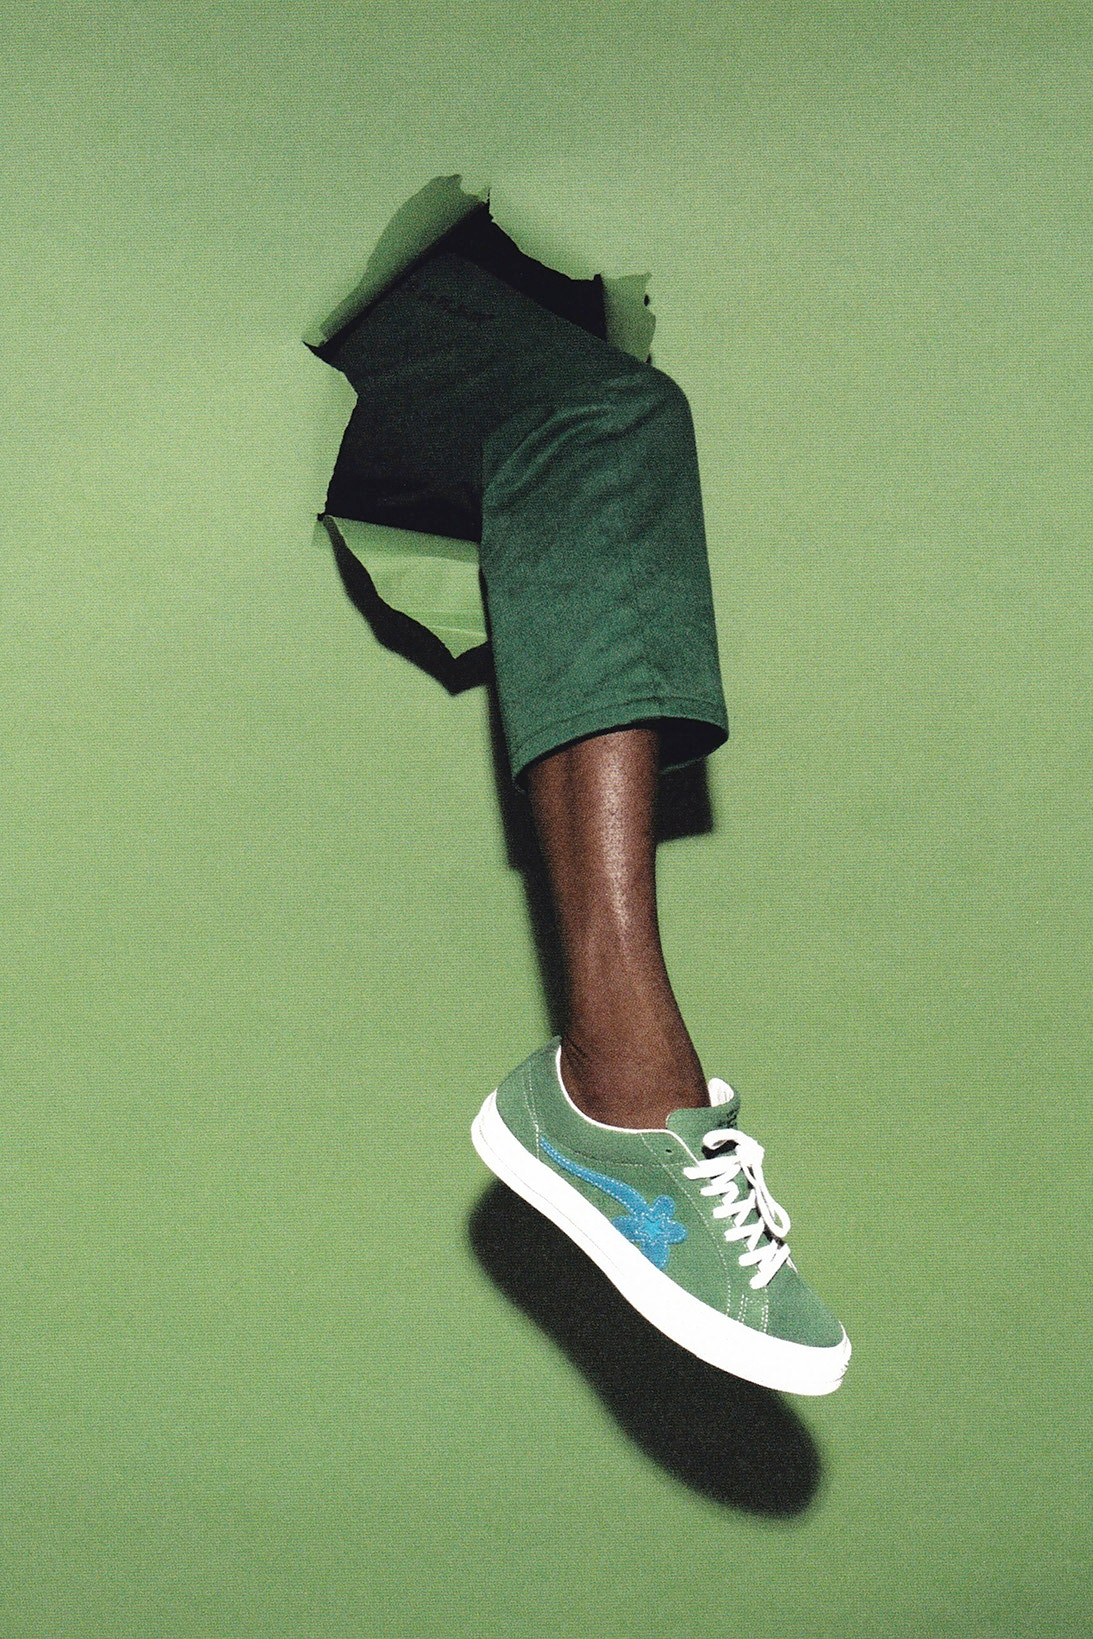 Seoul Witnessed the Release of the Converse x GOLF le FLEUR Signature Sneaker